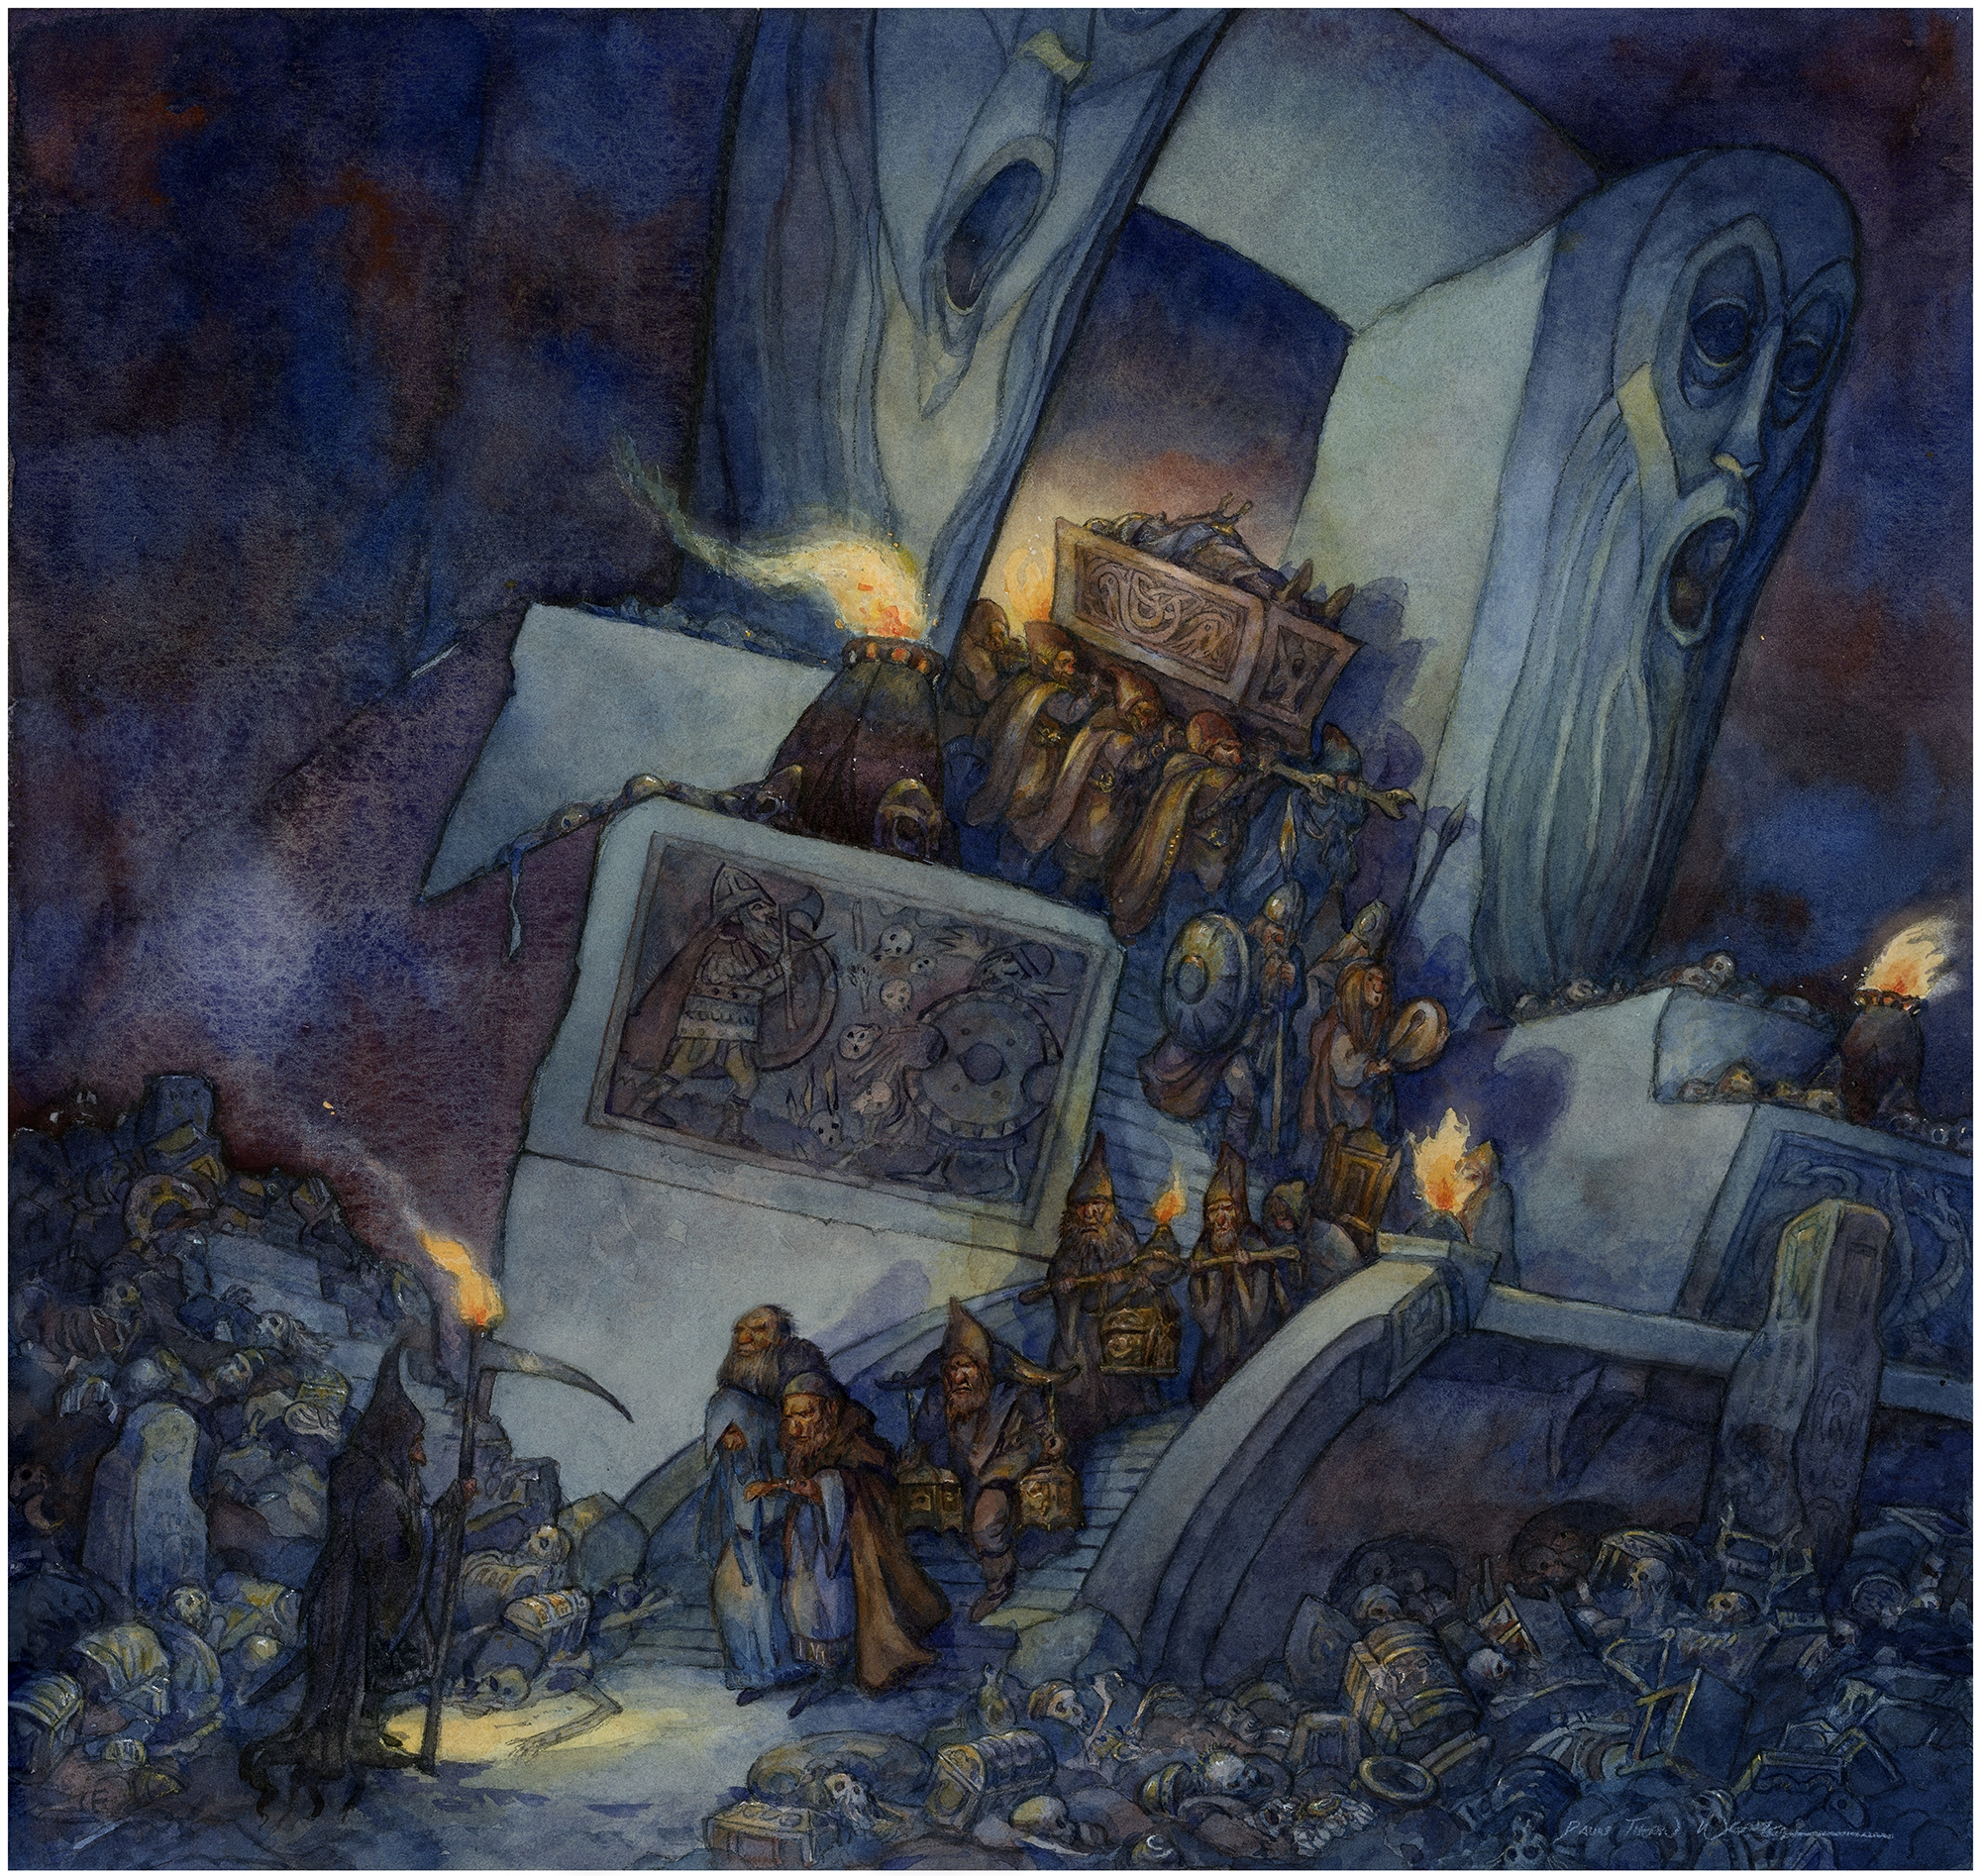 Secrets of the Dwarven Tombs, Kingdom of the Dwarfs Comic Art